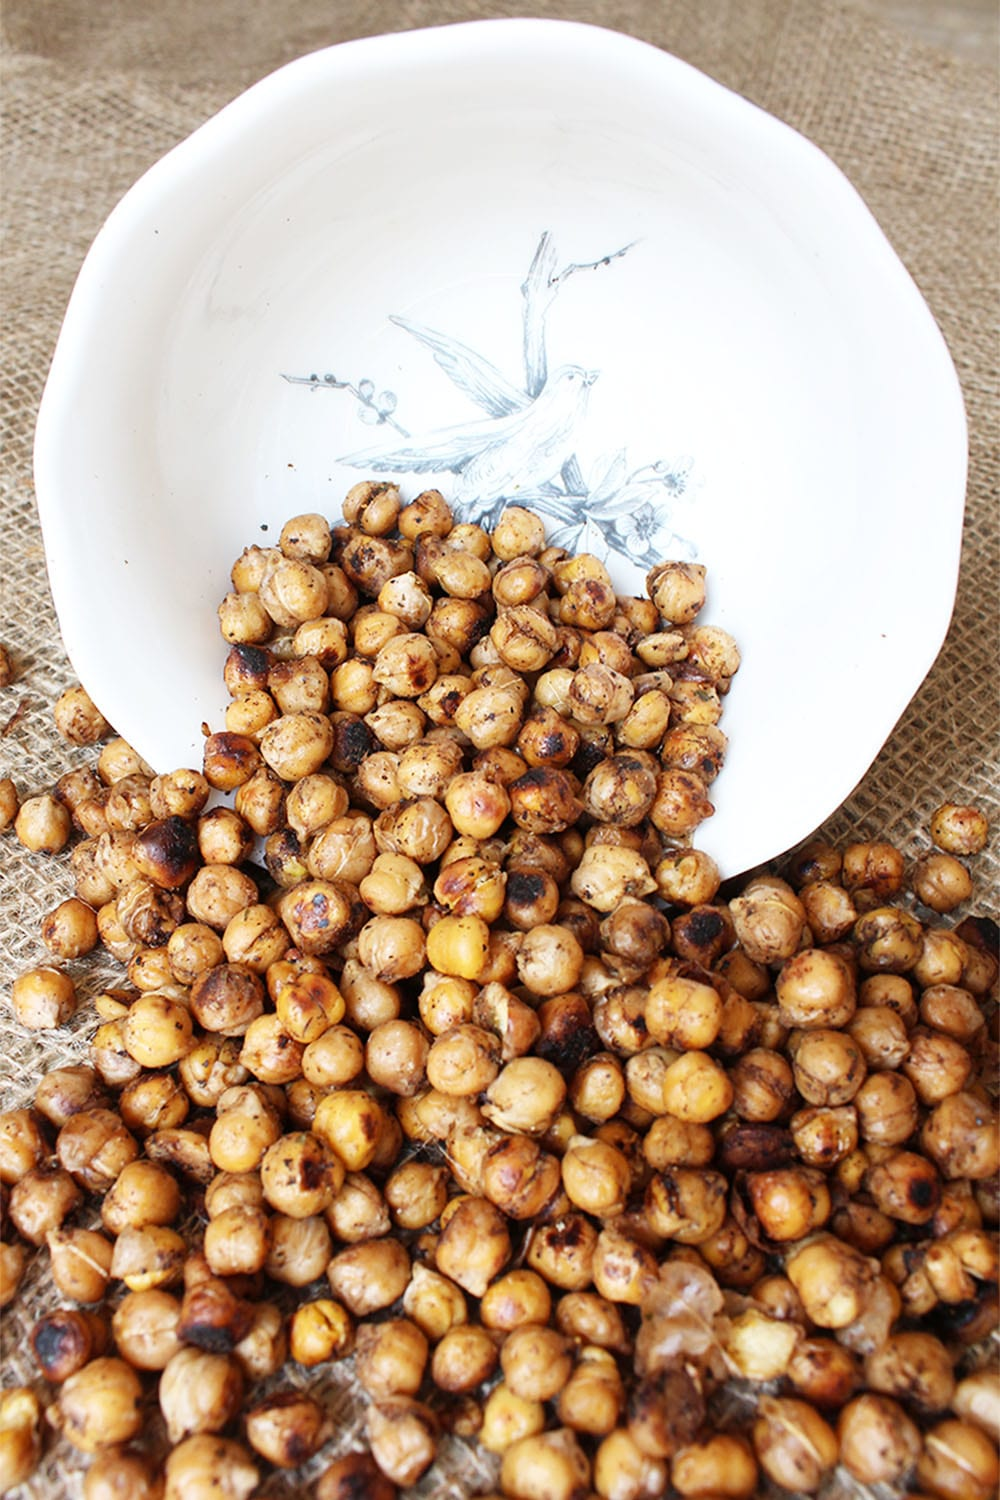 Chickpeas are one of the the most versatile vegan food products out there. Bake 'em, saute 'em, eat 'em cold. It's all good!